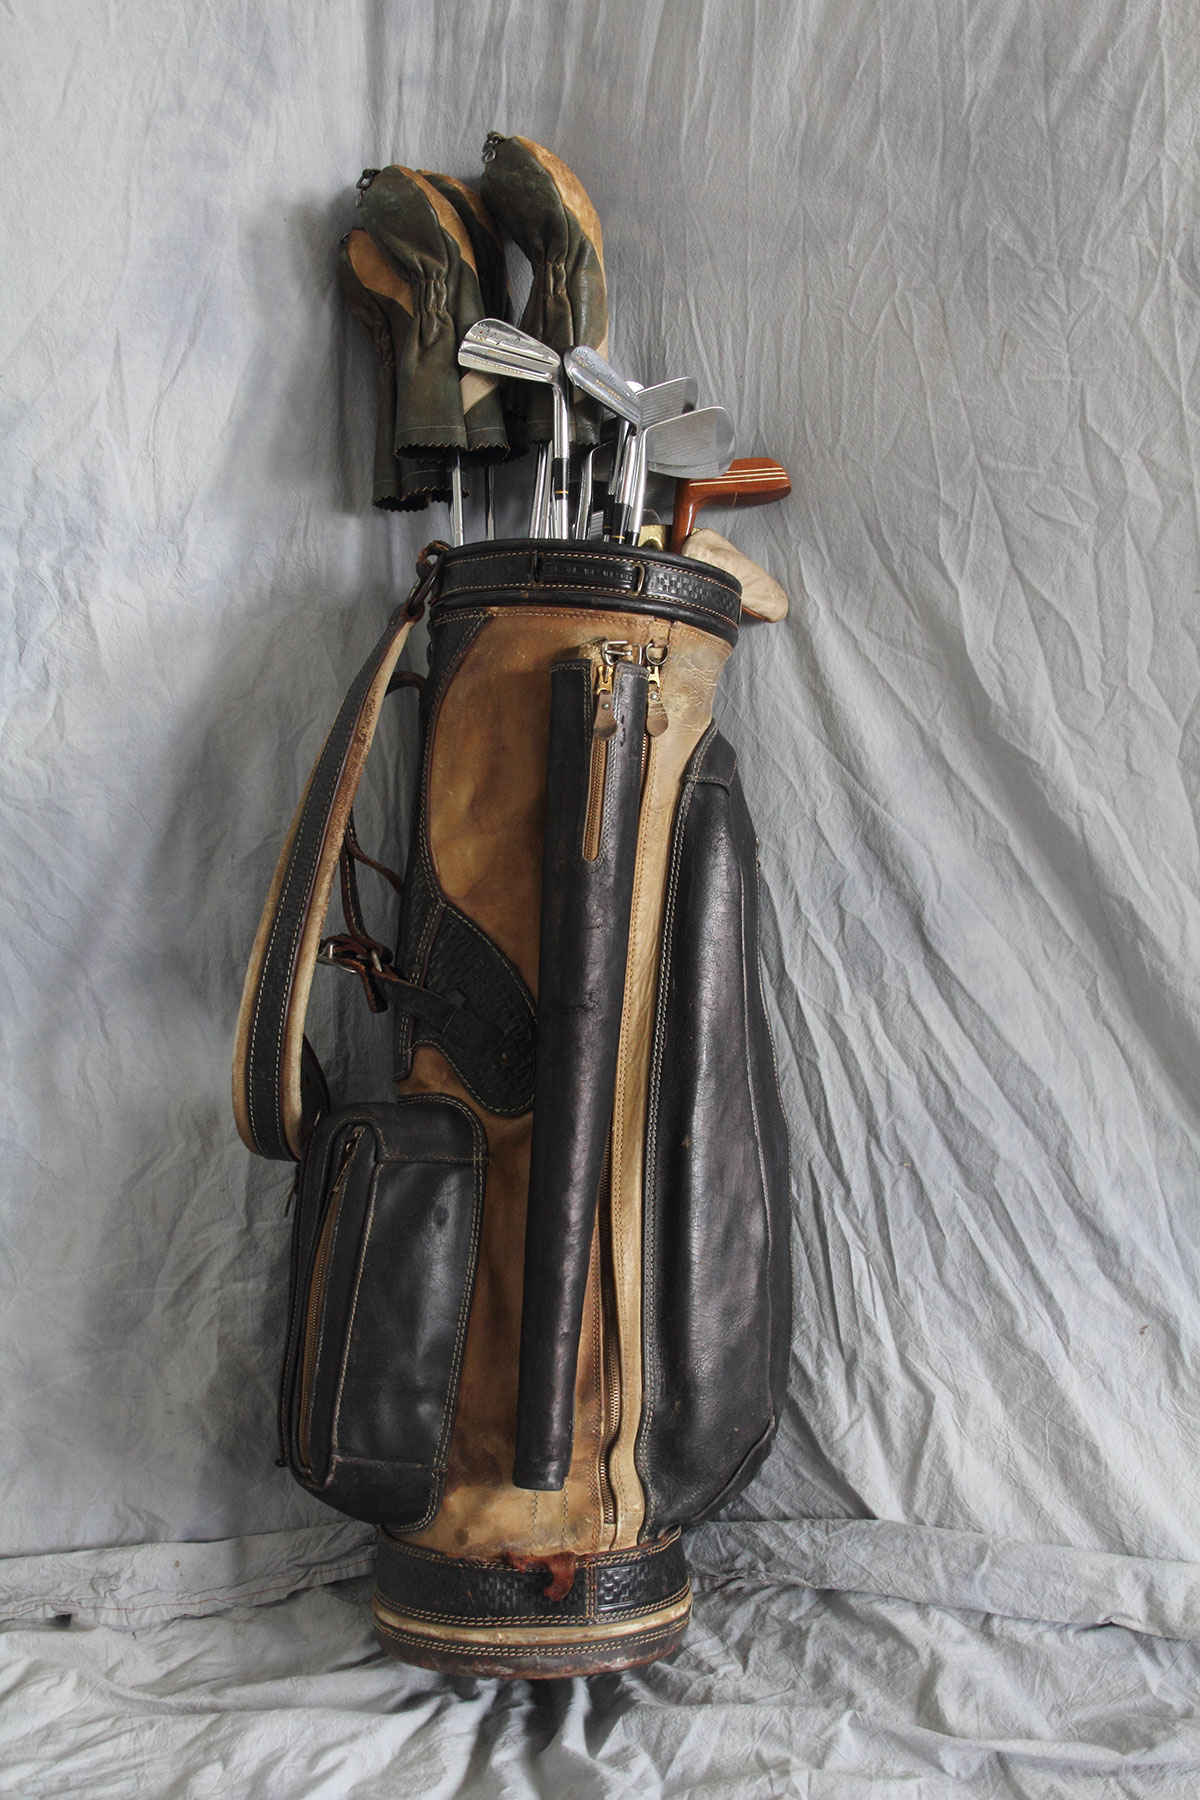 - The National Park Service contracted B.R. Howard to conserve a set of golf clubs and bag belonging to President Eisenhower that were engraved with his name.